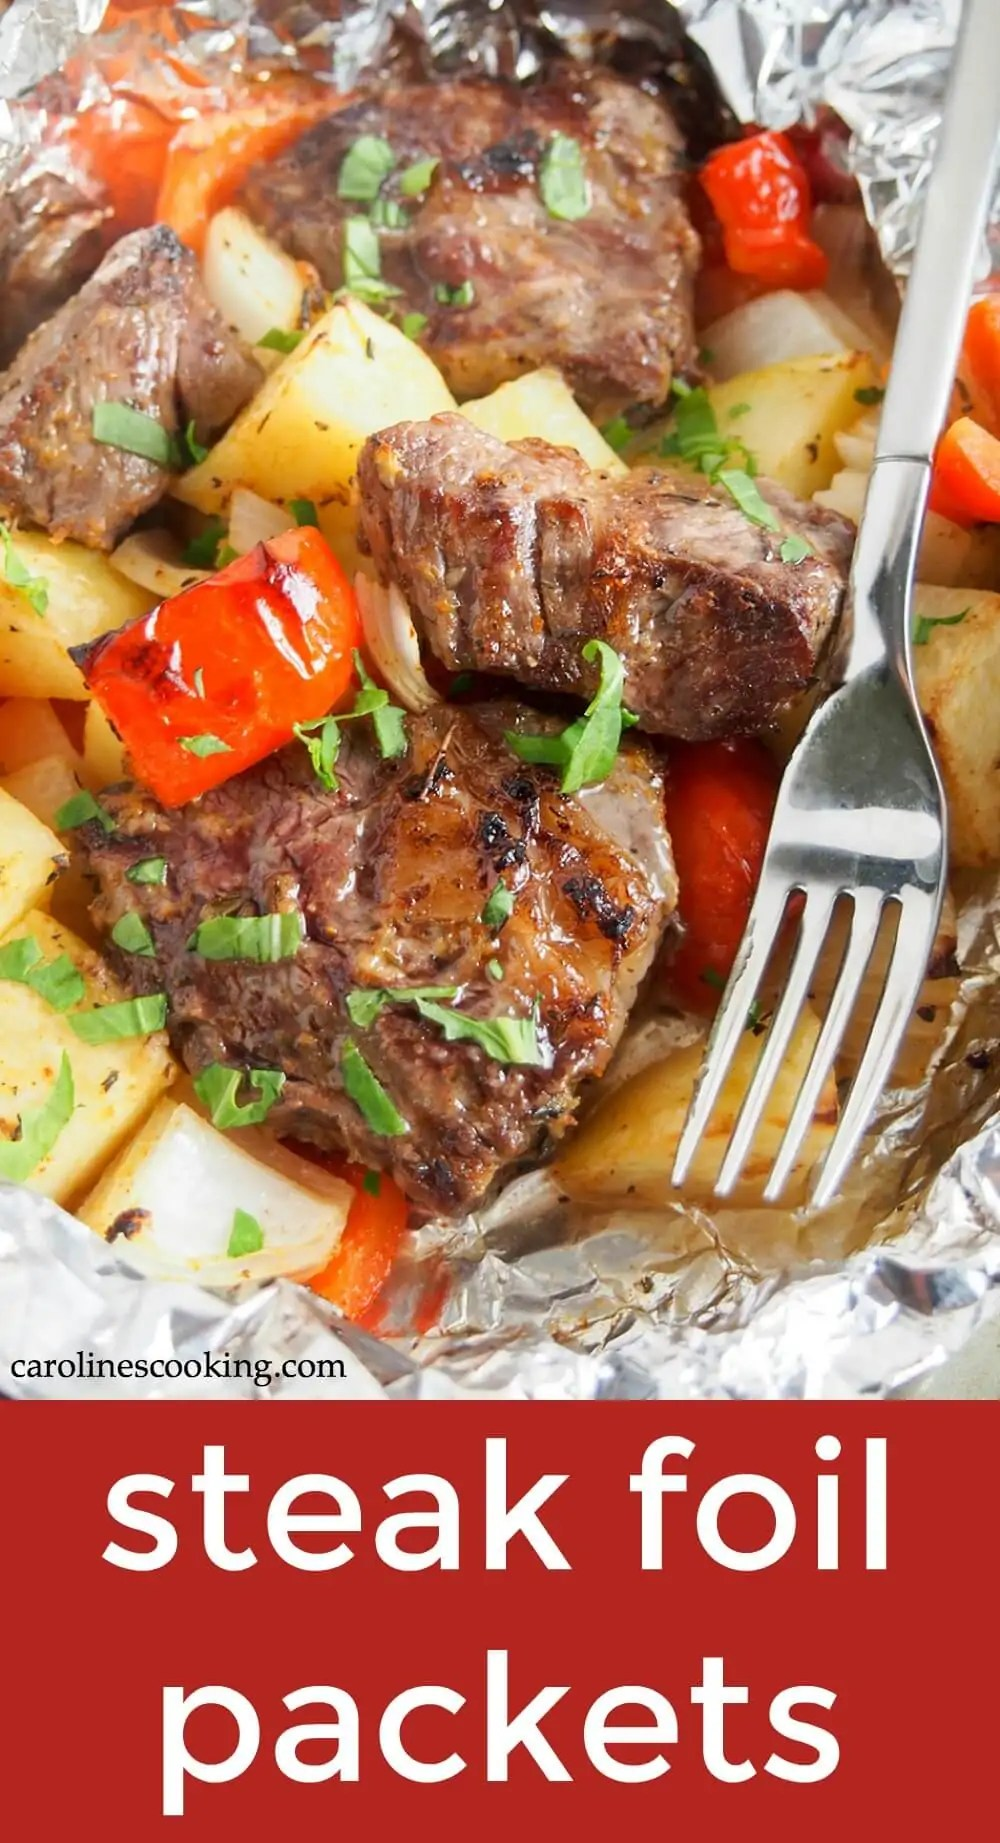 Whatever your weather, these steak foil packets are a delicious, easy meal. They take no time to prepare, the whole meal cooks together and there's minimal clean up. What could be better?! Flavorful, easy to adapt, and great either grill or oven cook. #steakandpotatoes #grilling #foilpack #glutenfree